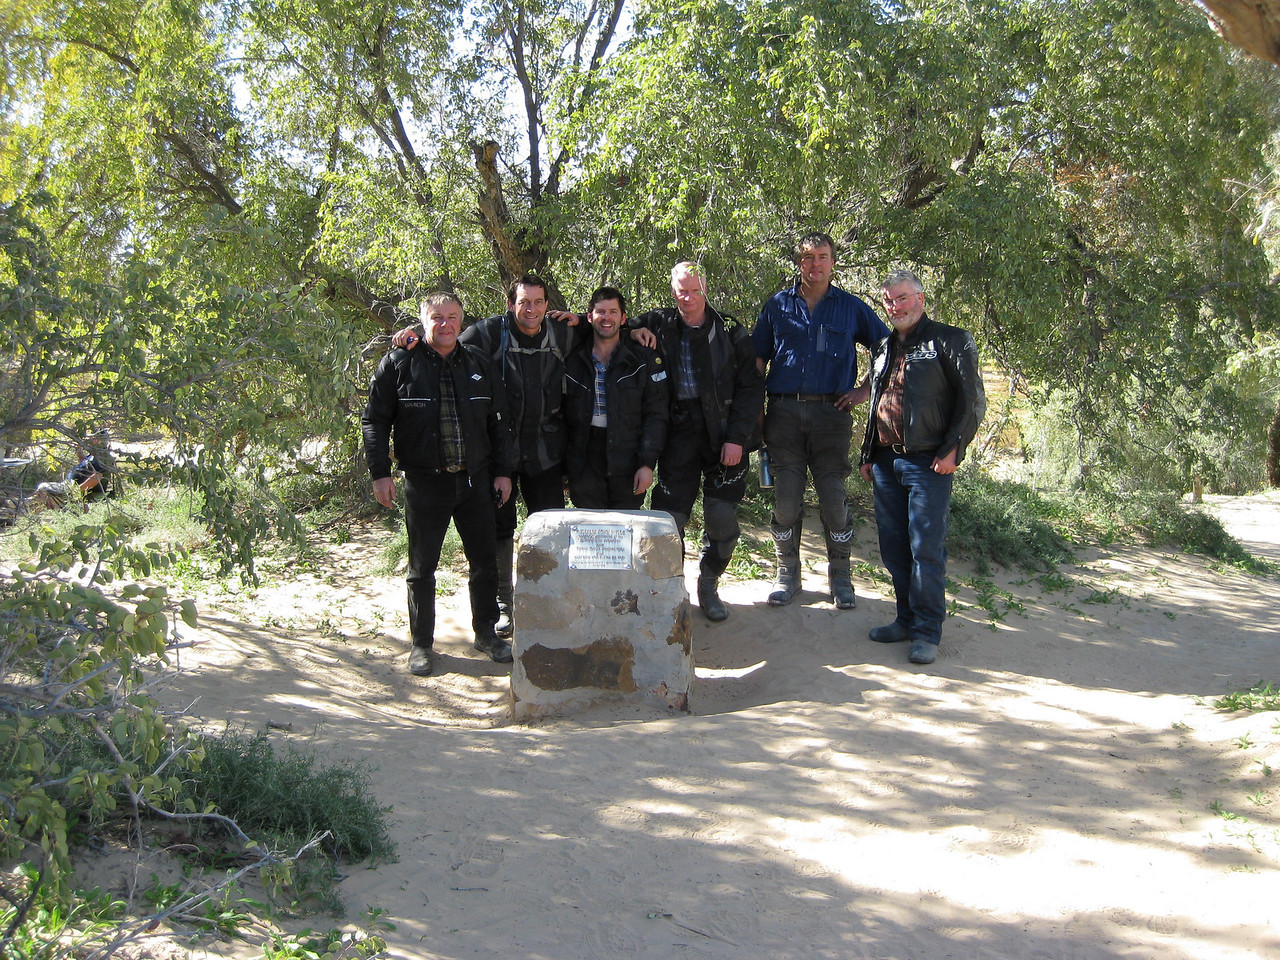 Some of the guys at Will's Grave. Top spot to camp but we had to keep going. Got our first real taste of sand riding in to this site. Not great on a fully loaded pig.